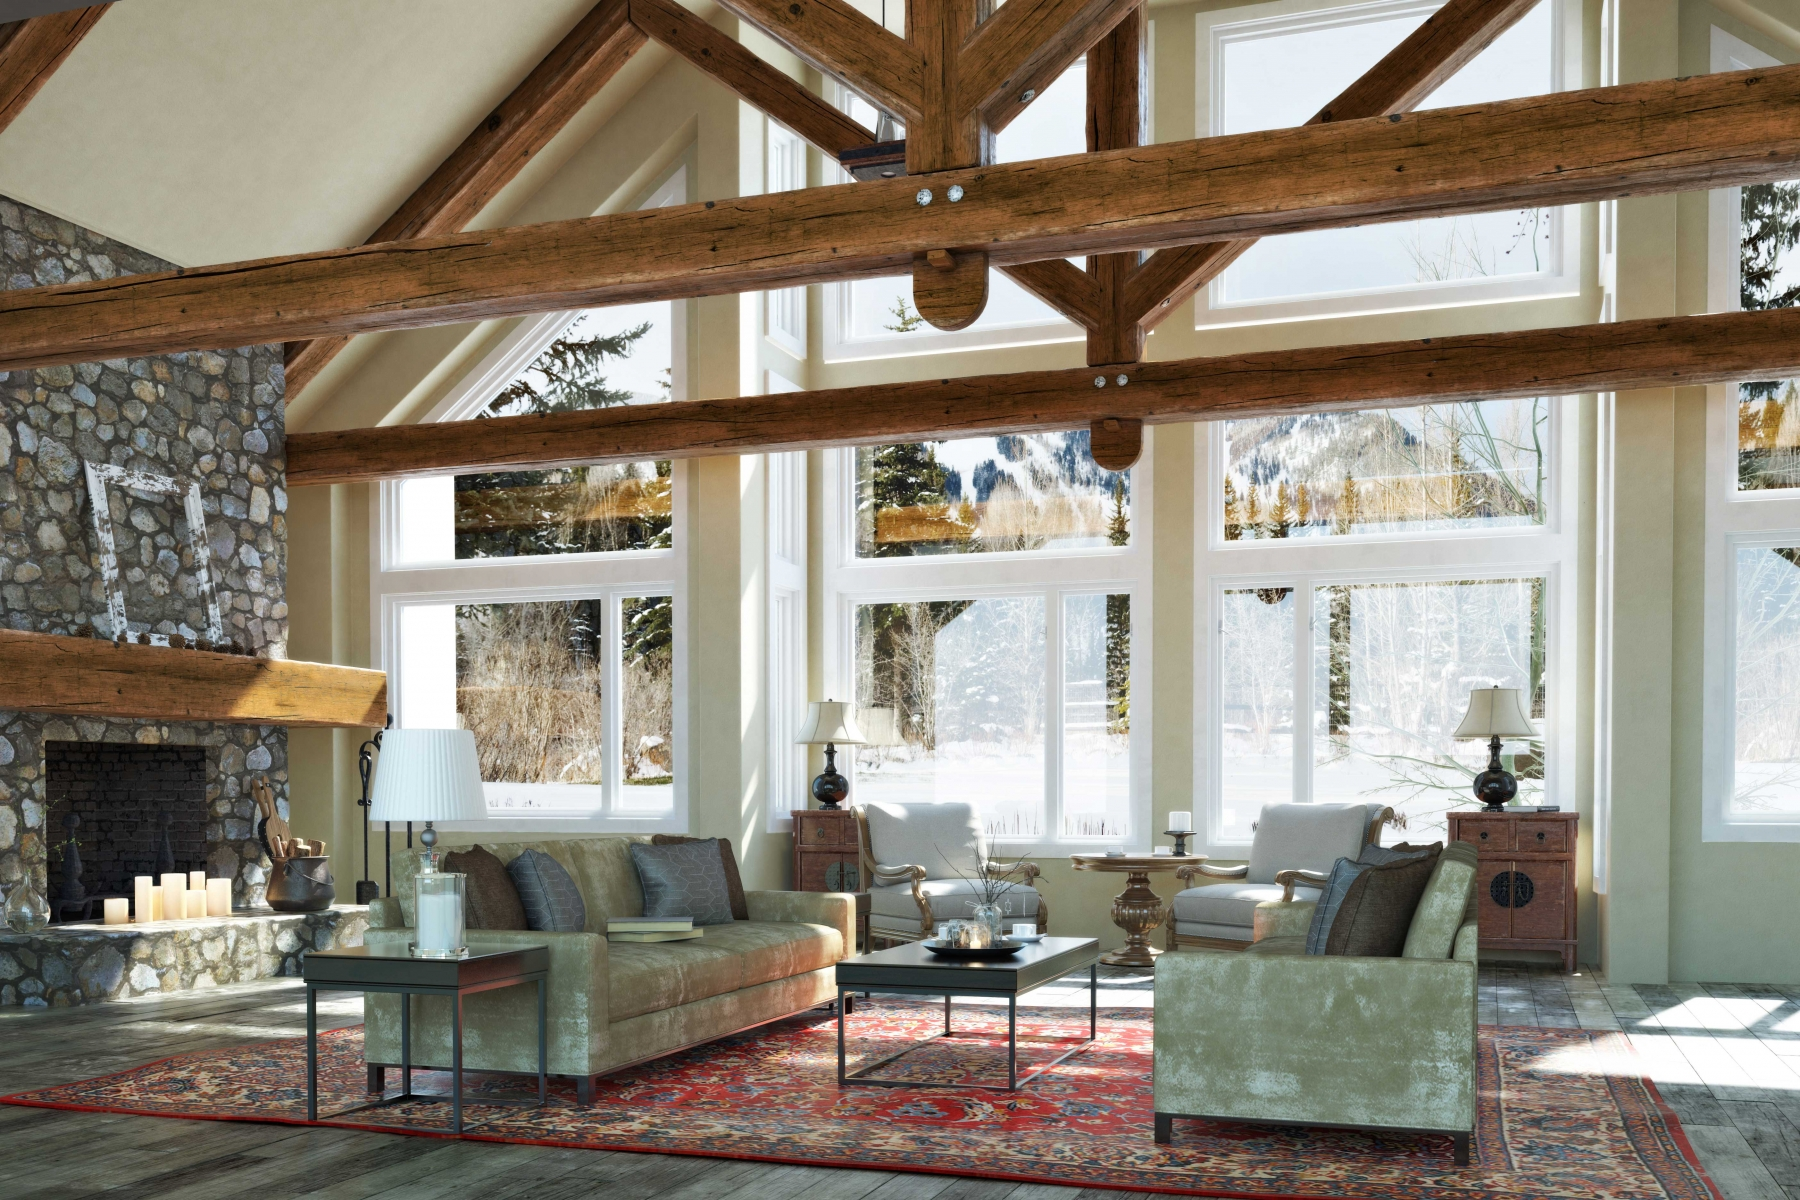 beautiful open concept cabin interior with wood beams